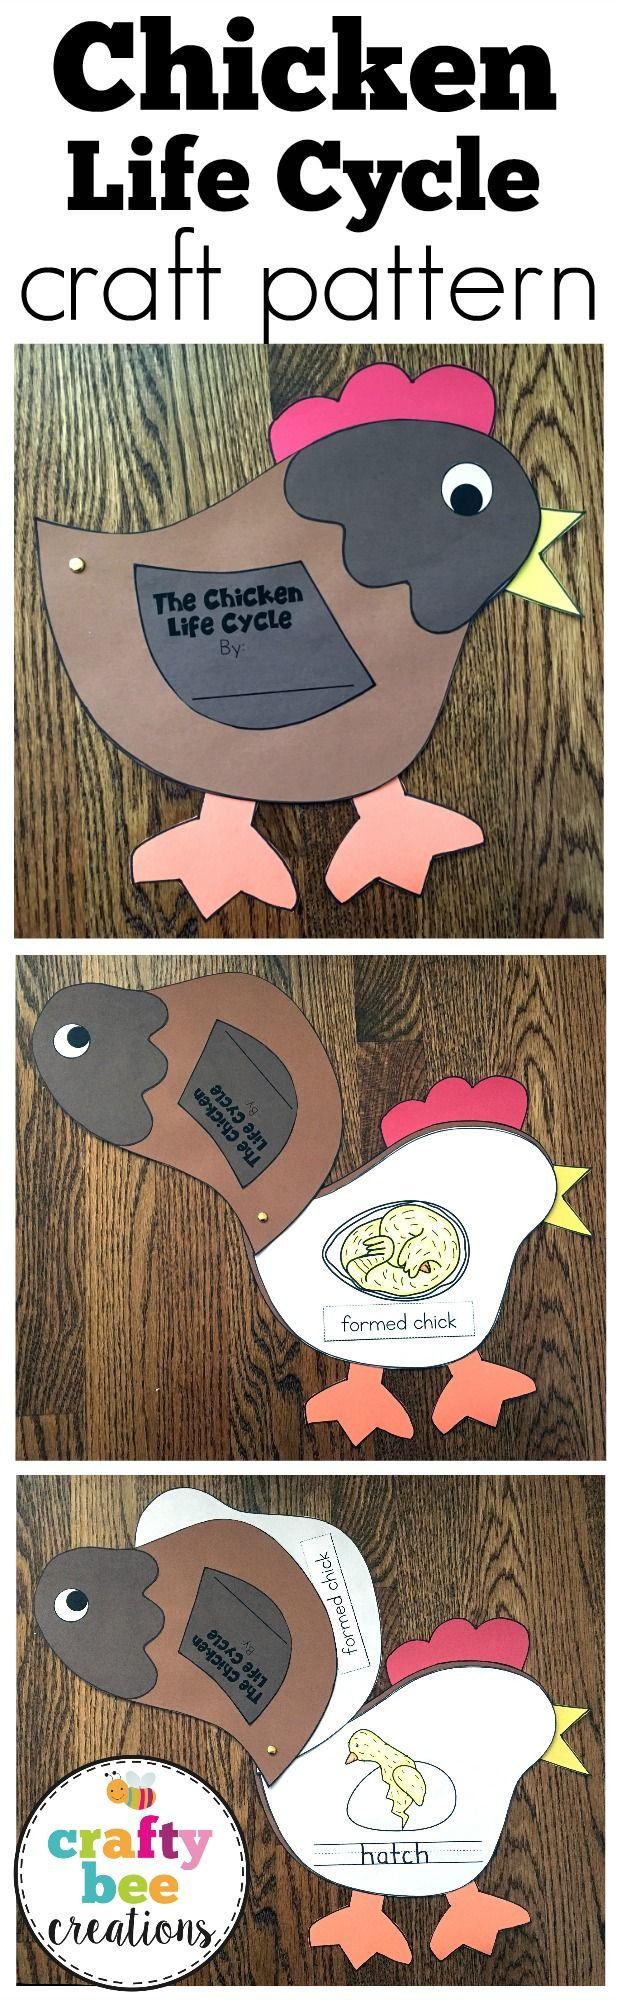 This is a fun Chicken Life Cycle craft where students will get to apply the different stages of the life cycle to the craft by putting them pages in order.